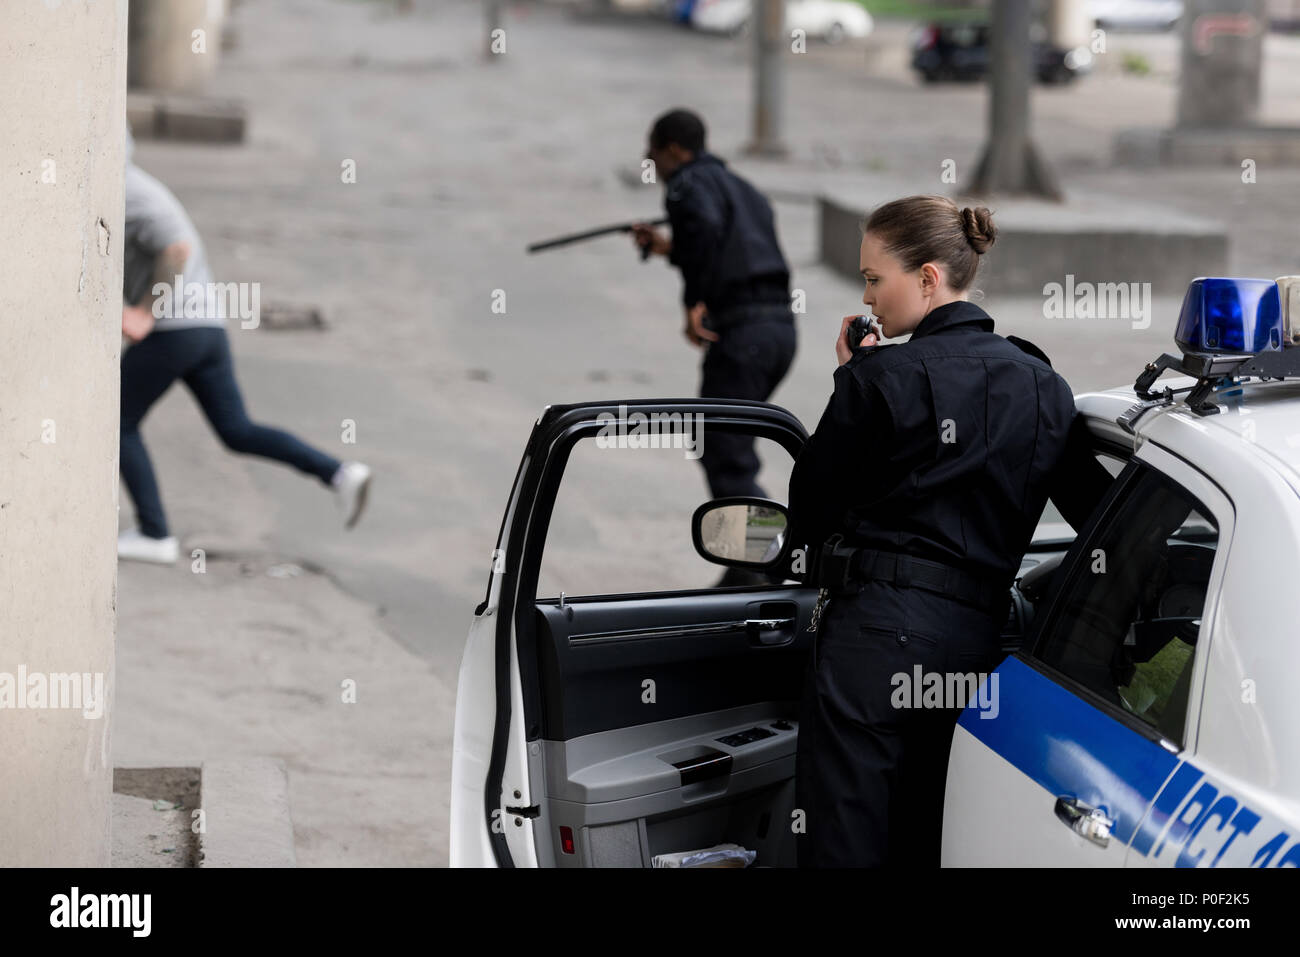 police officers with car chasing thief on street - Stock Image